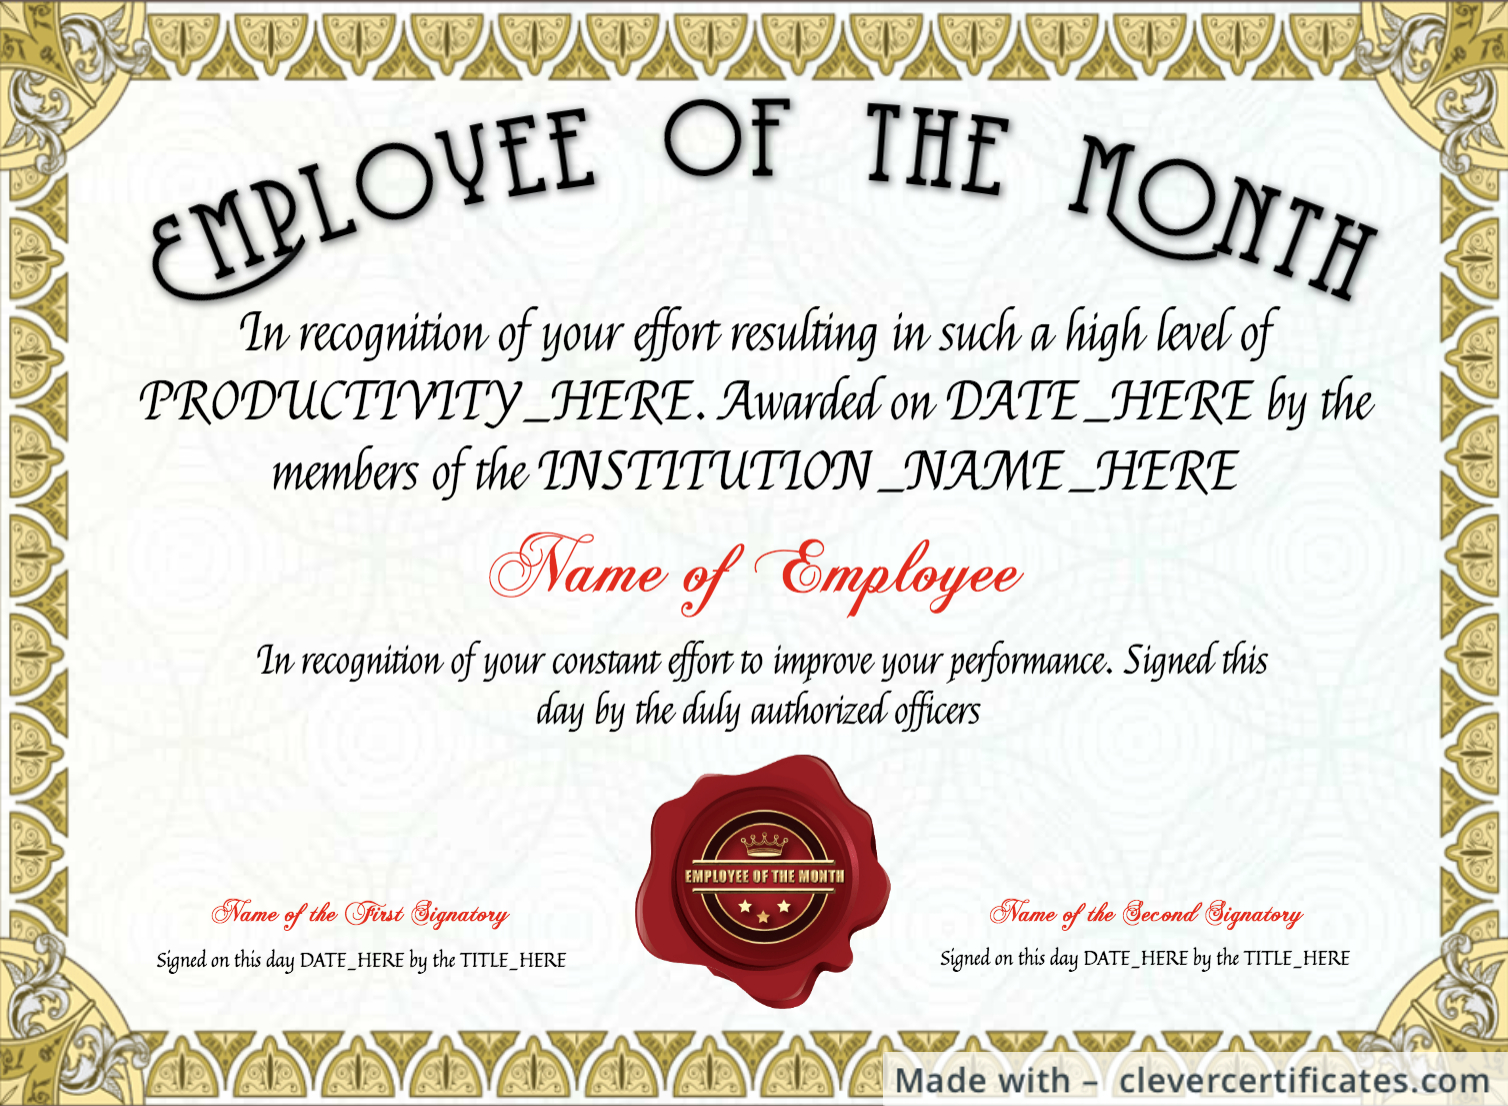 Free Employee Of The Month Certificate Template At with Employee Of The Month Certificate Templates